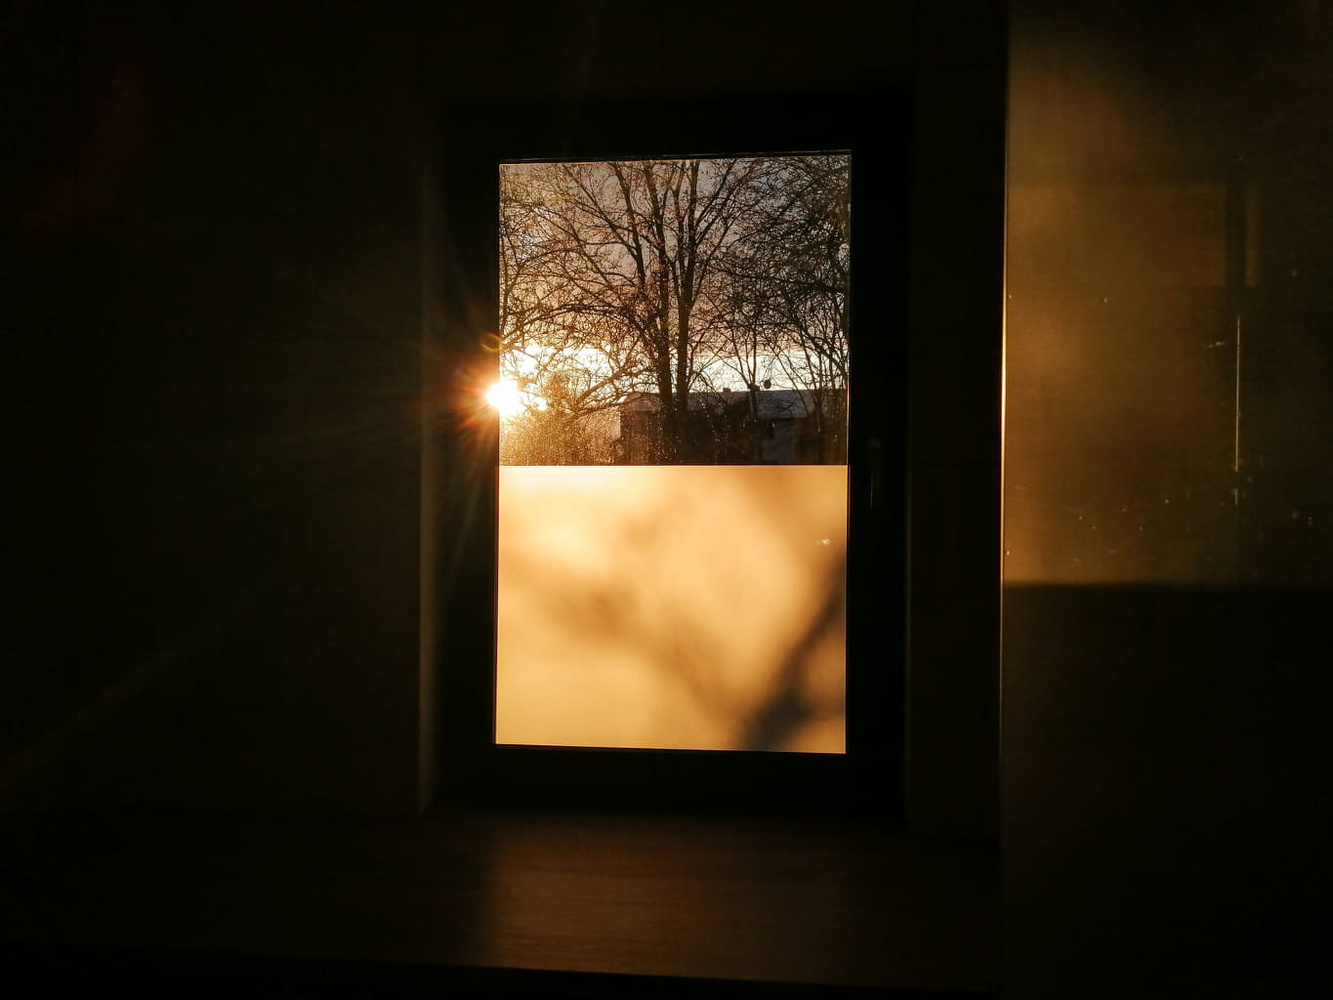 A sun rise coming through the window